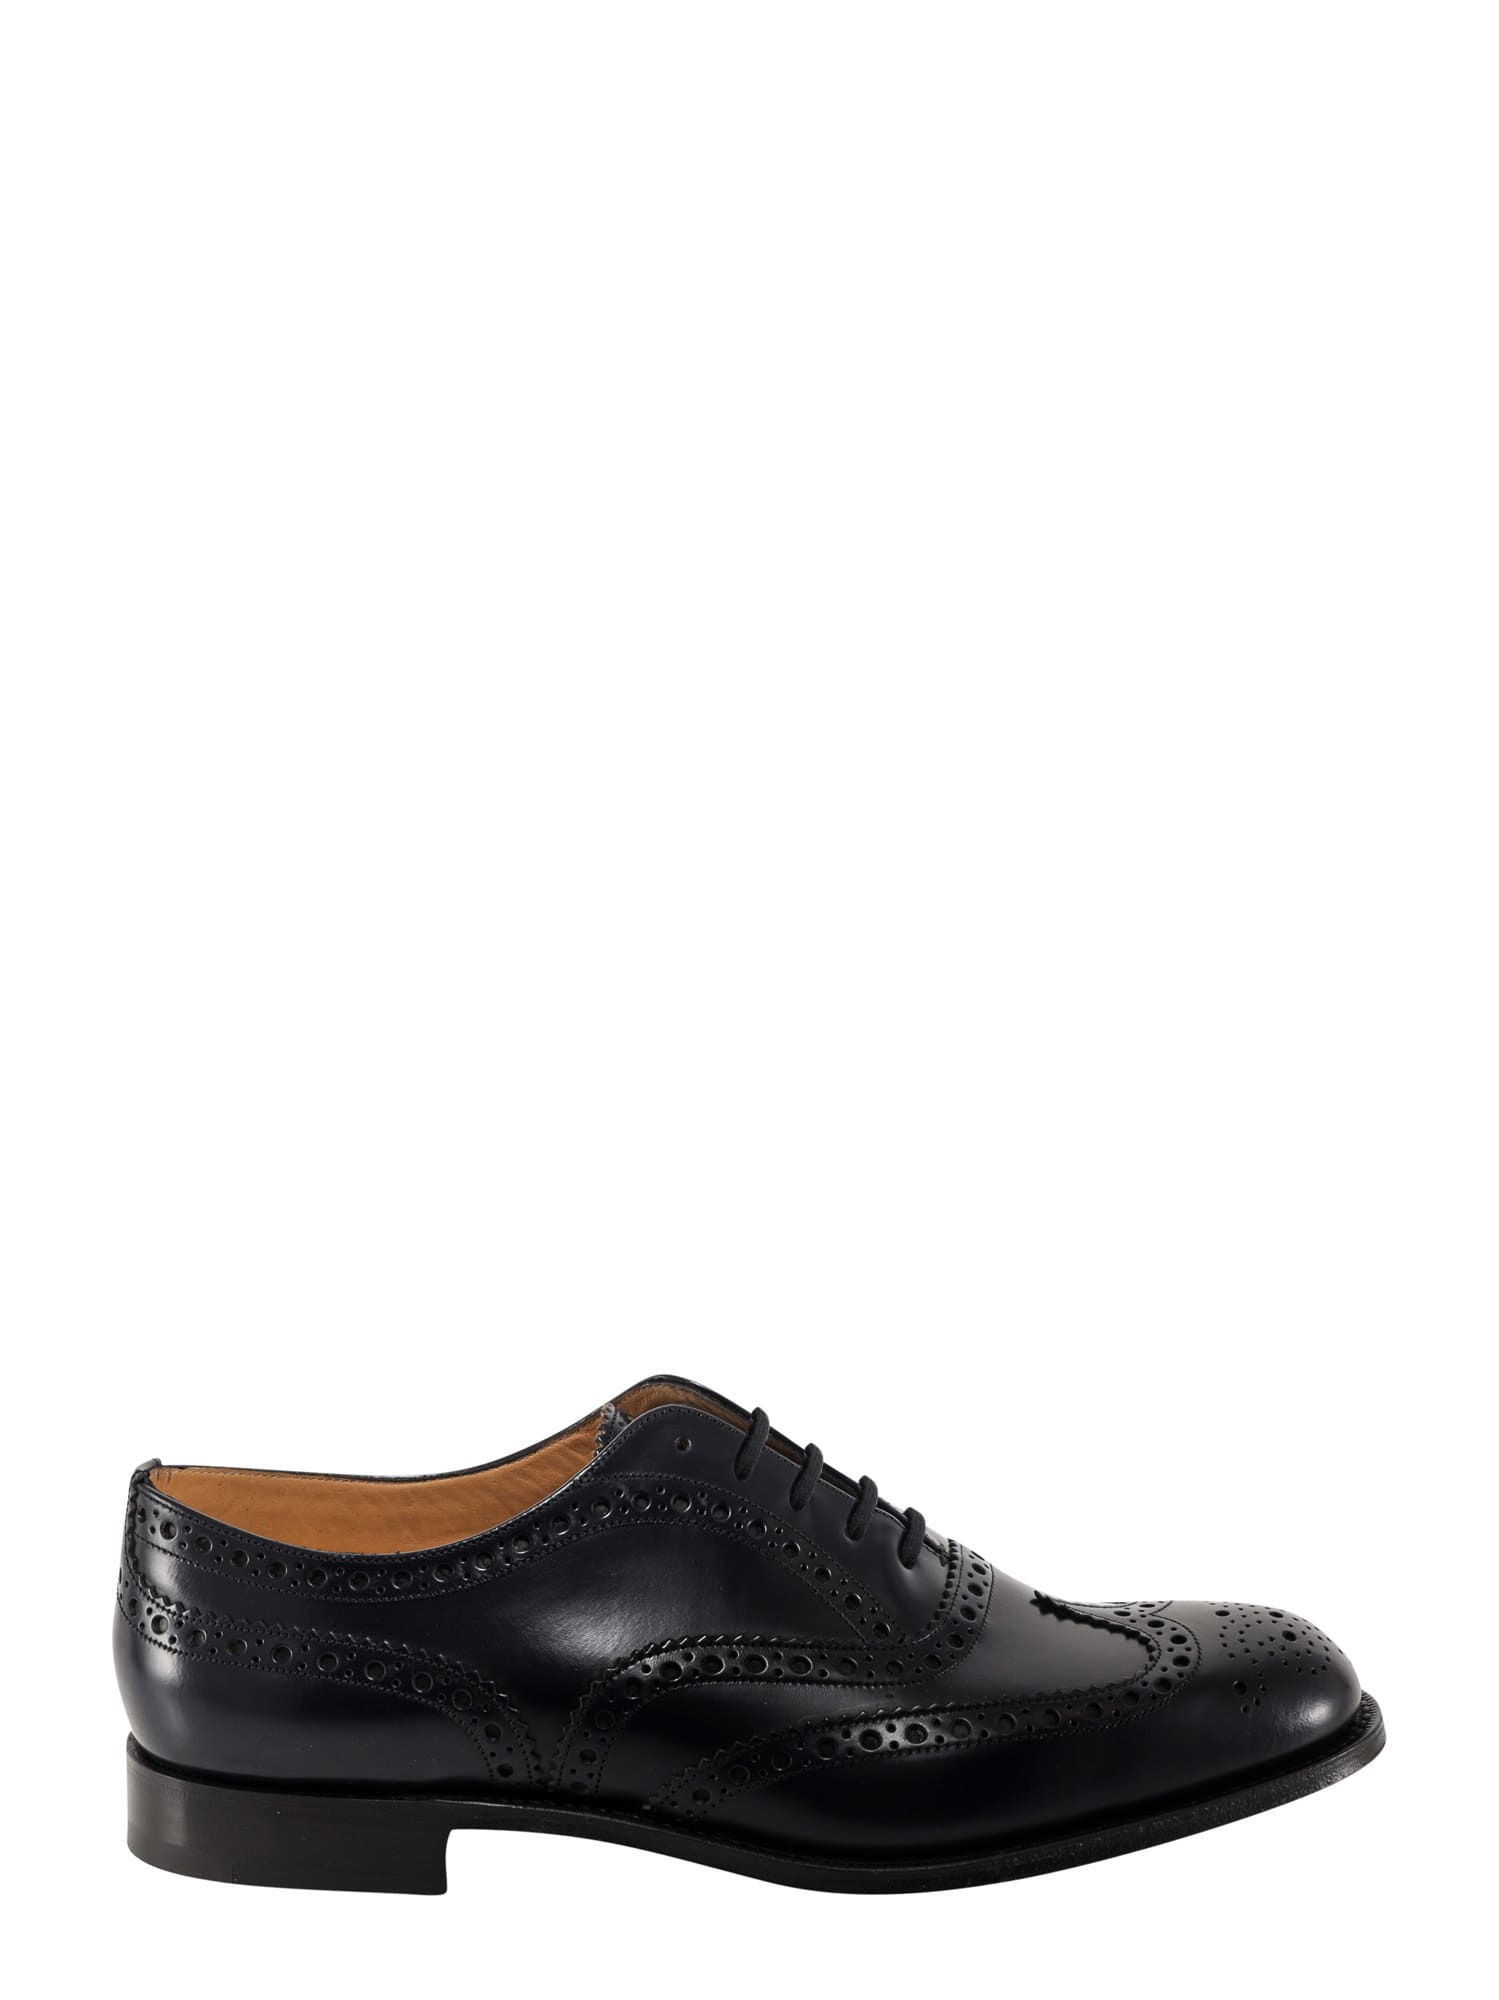 Church's BURWOOD LACE-UP